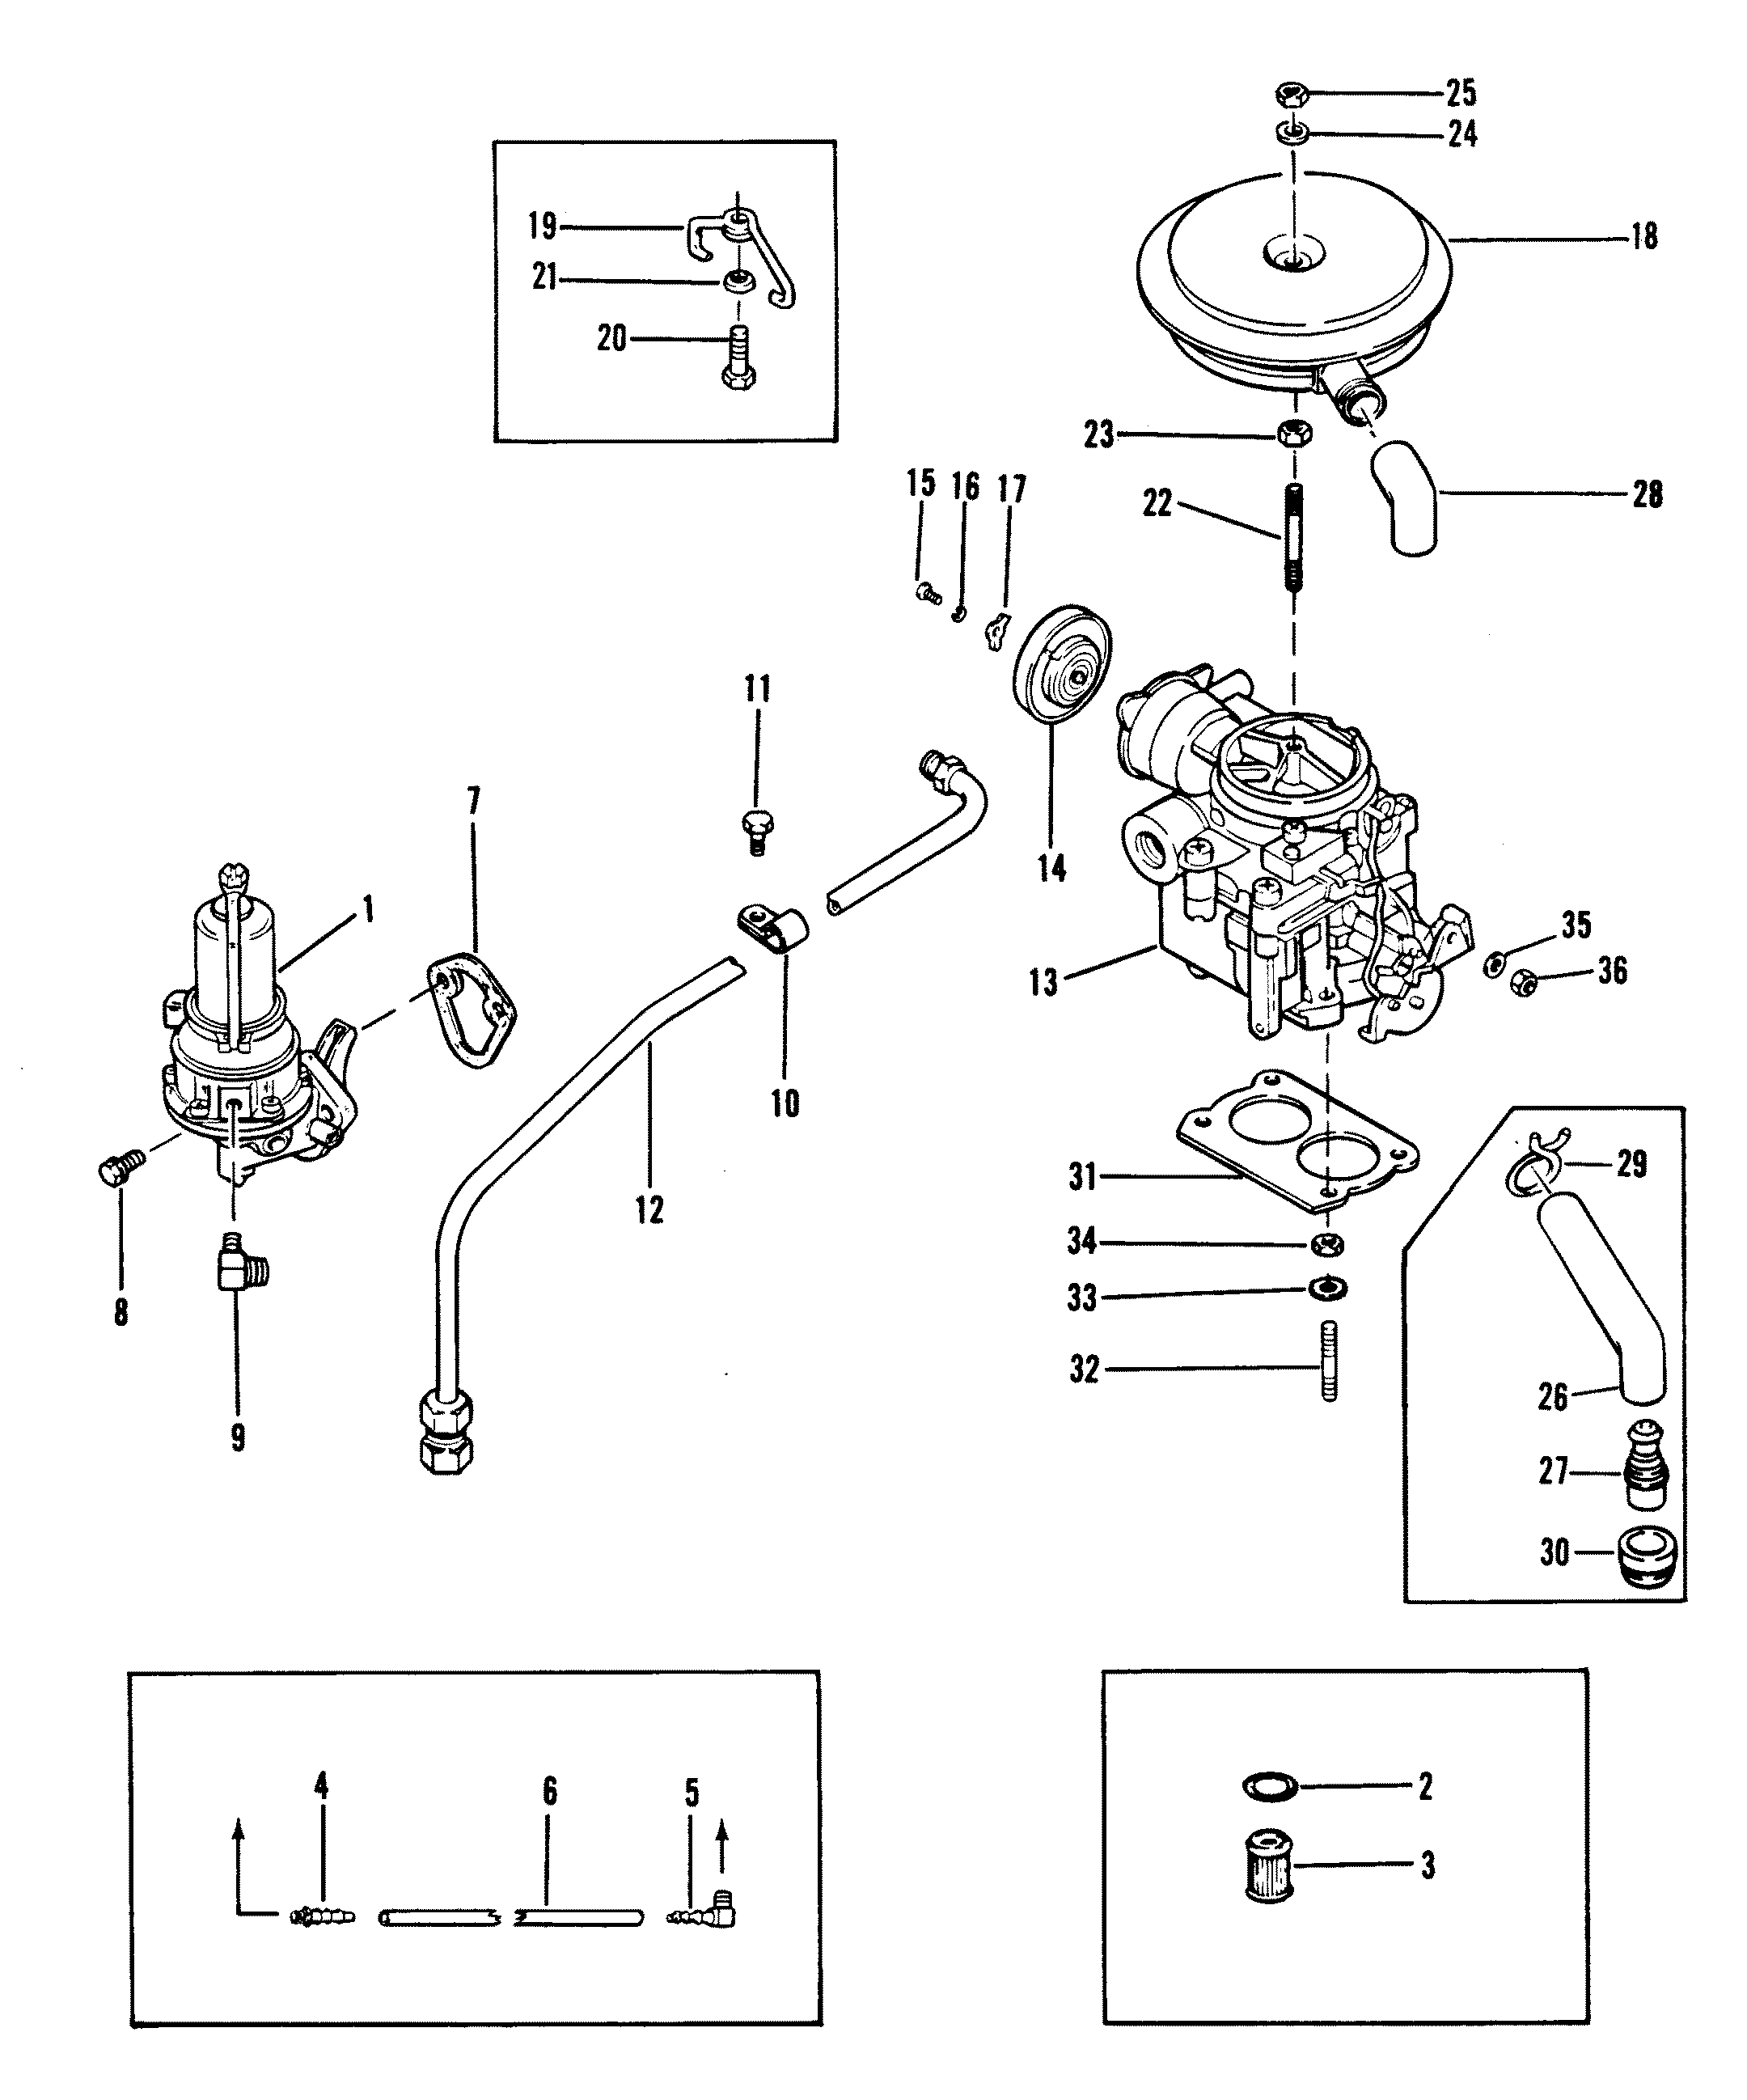 Fuel Pump And Carburetor Old Design For Mercruiser 120 H P 2 5l140 H P 3 0l R Mr Alpha